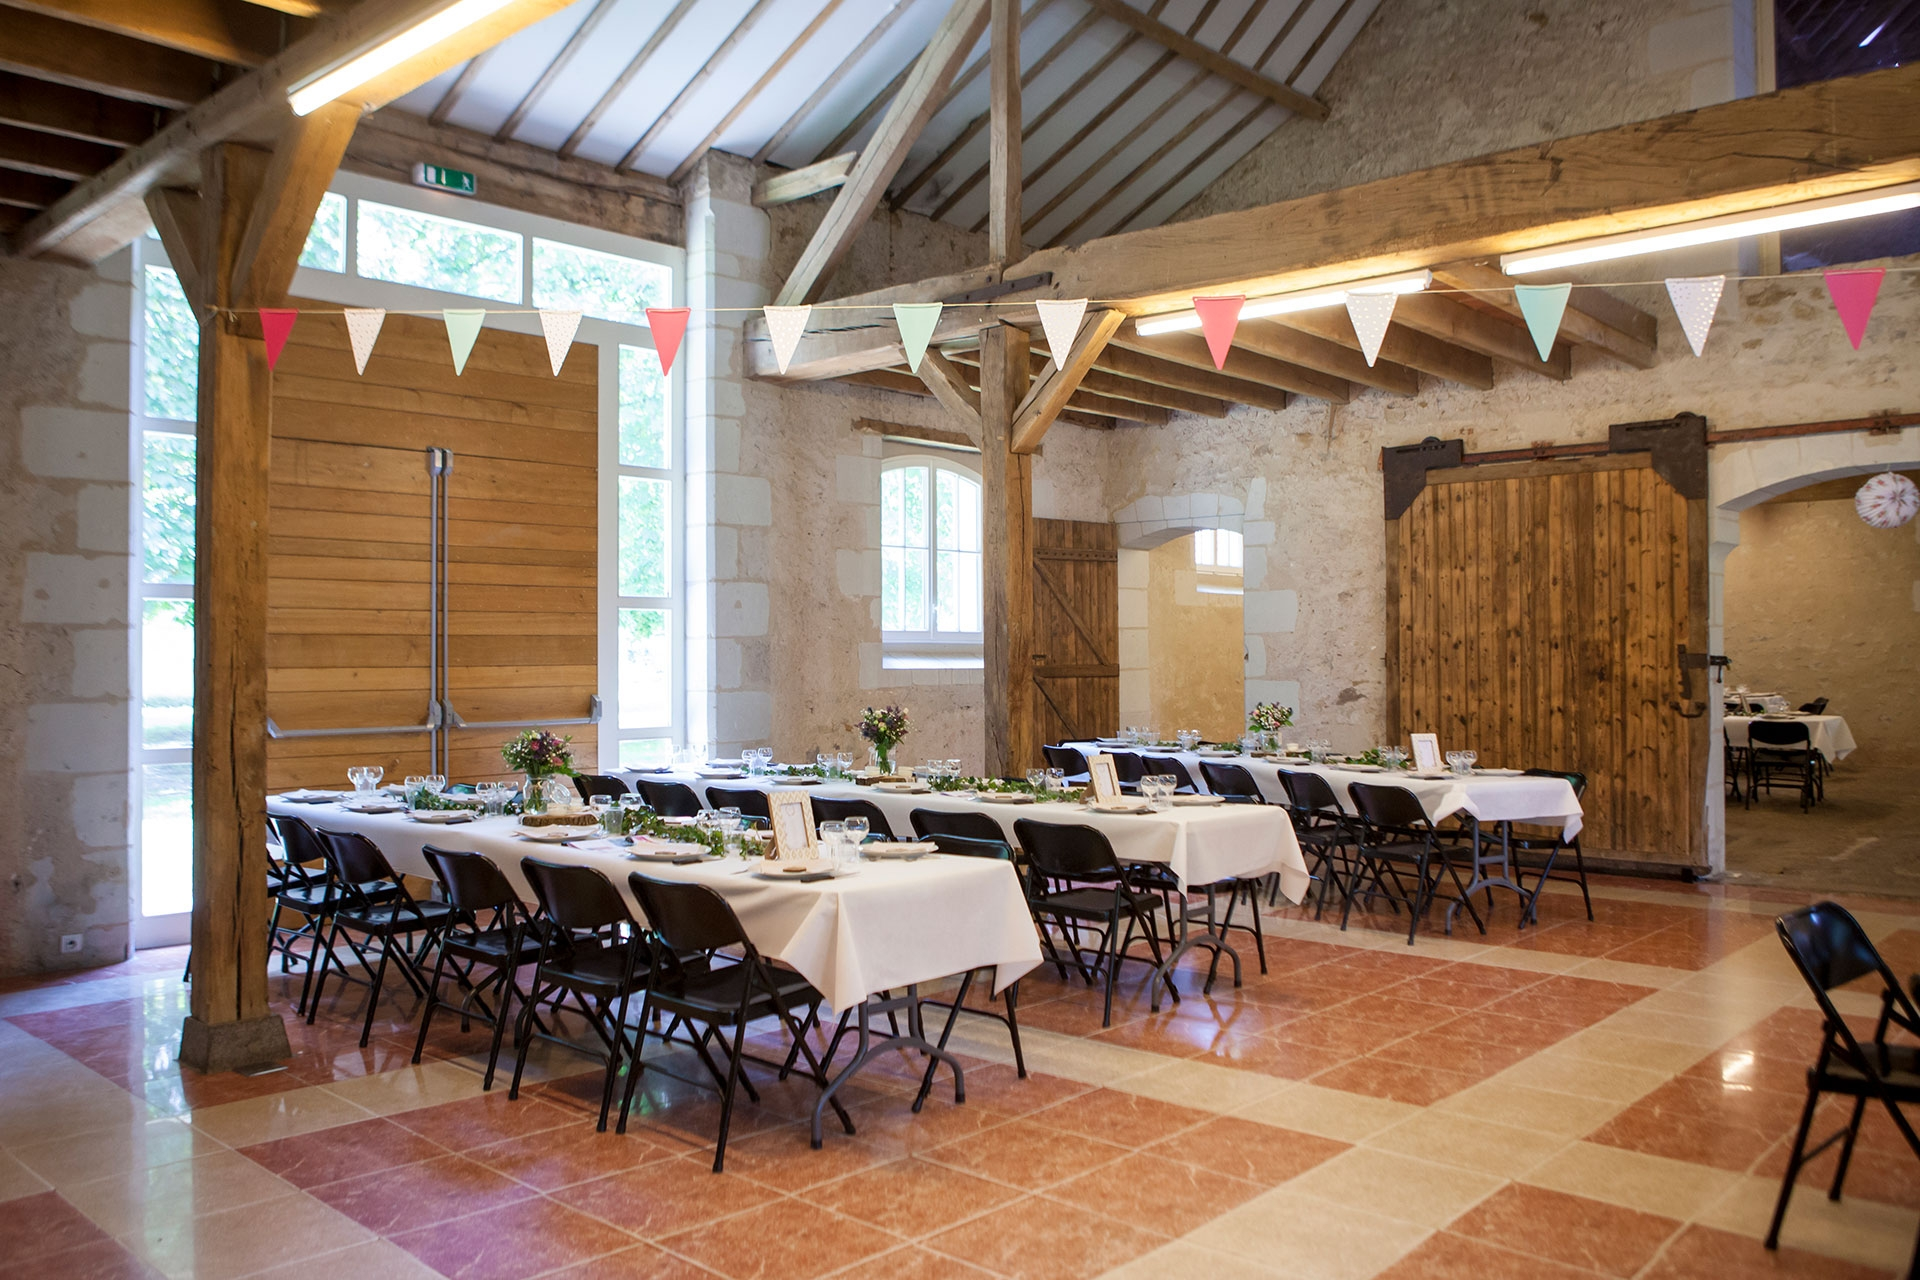 particuliers-evenements-mariage-oui-carla&jeremy-65